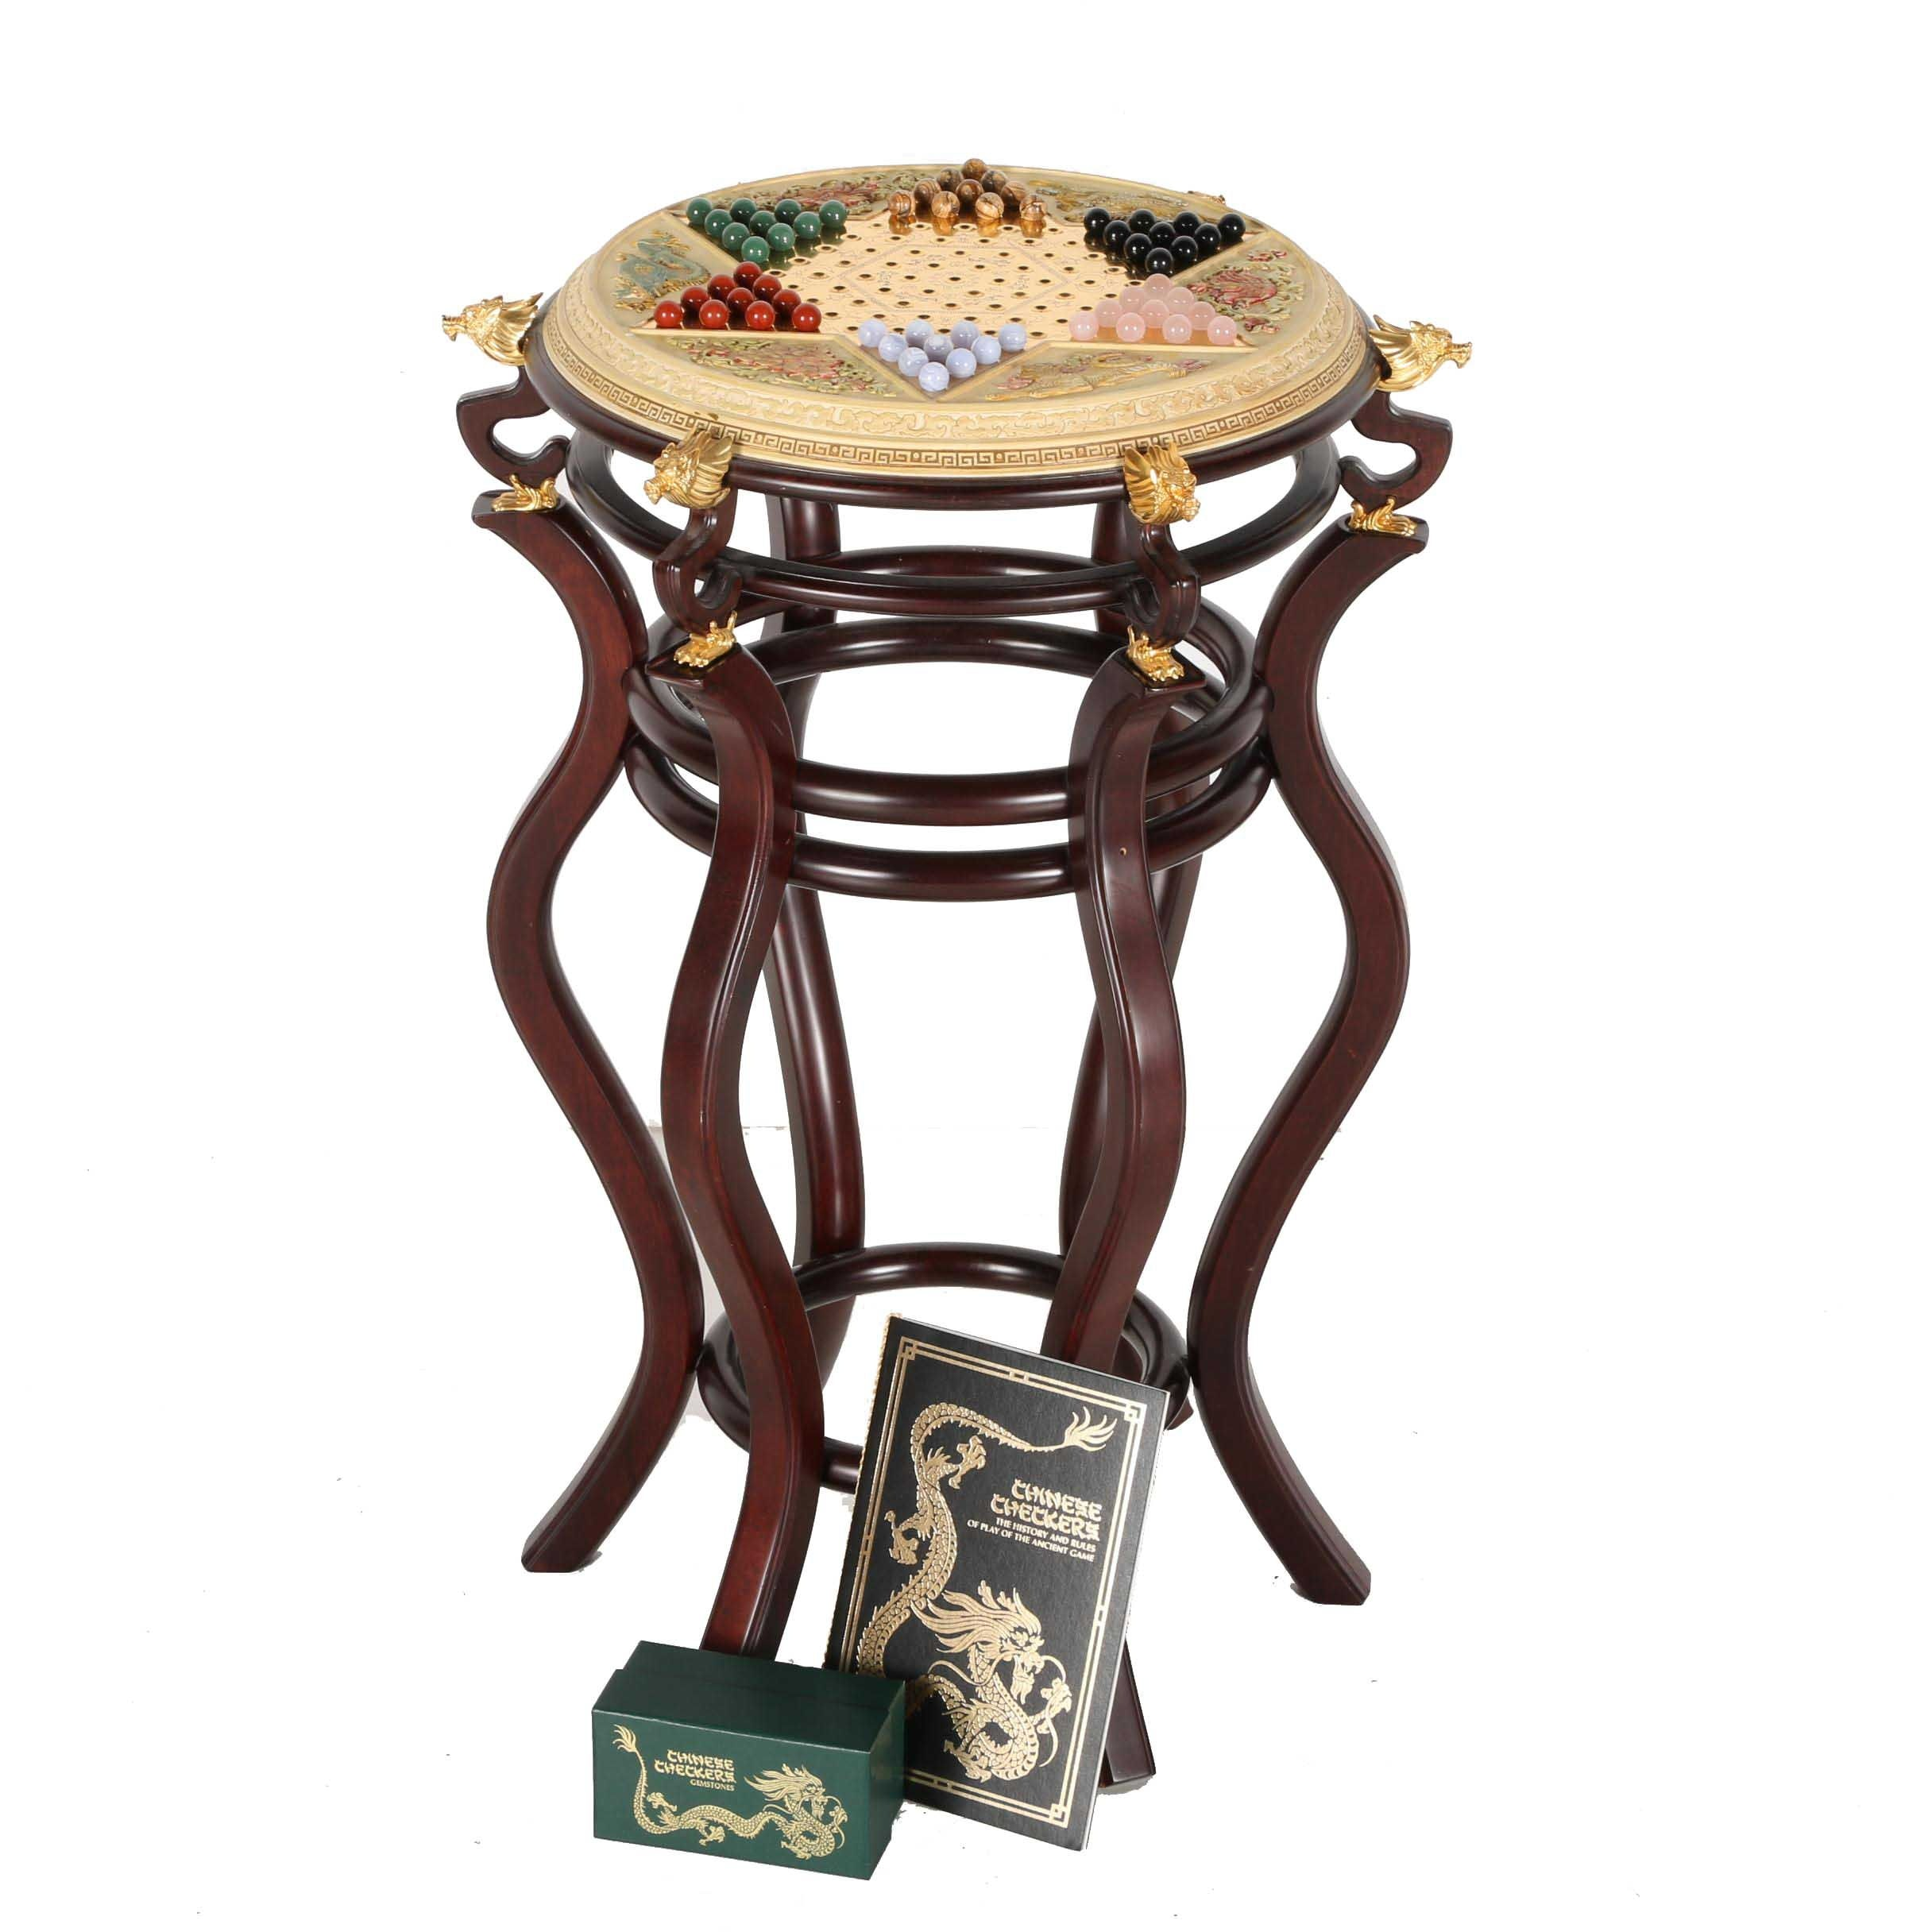 Elaborate Chinese Checkers Game Table With Semi Precious Stone Pieces ...